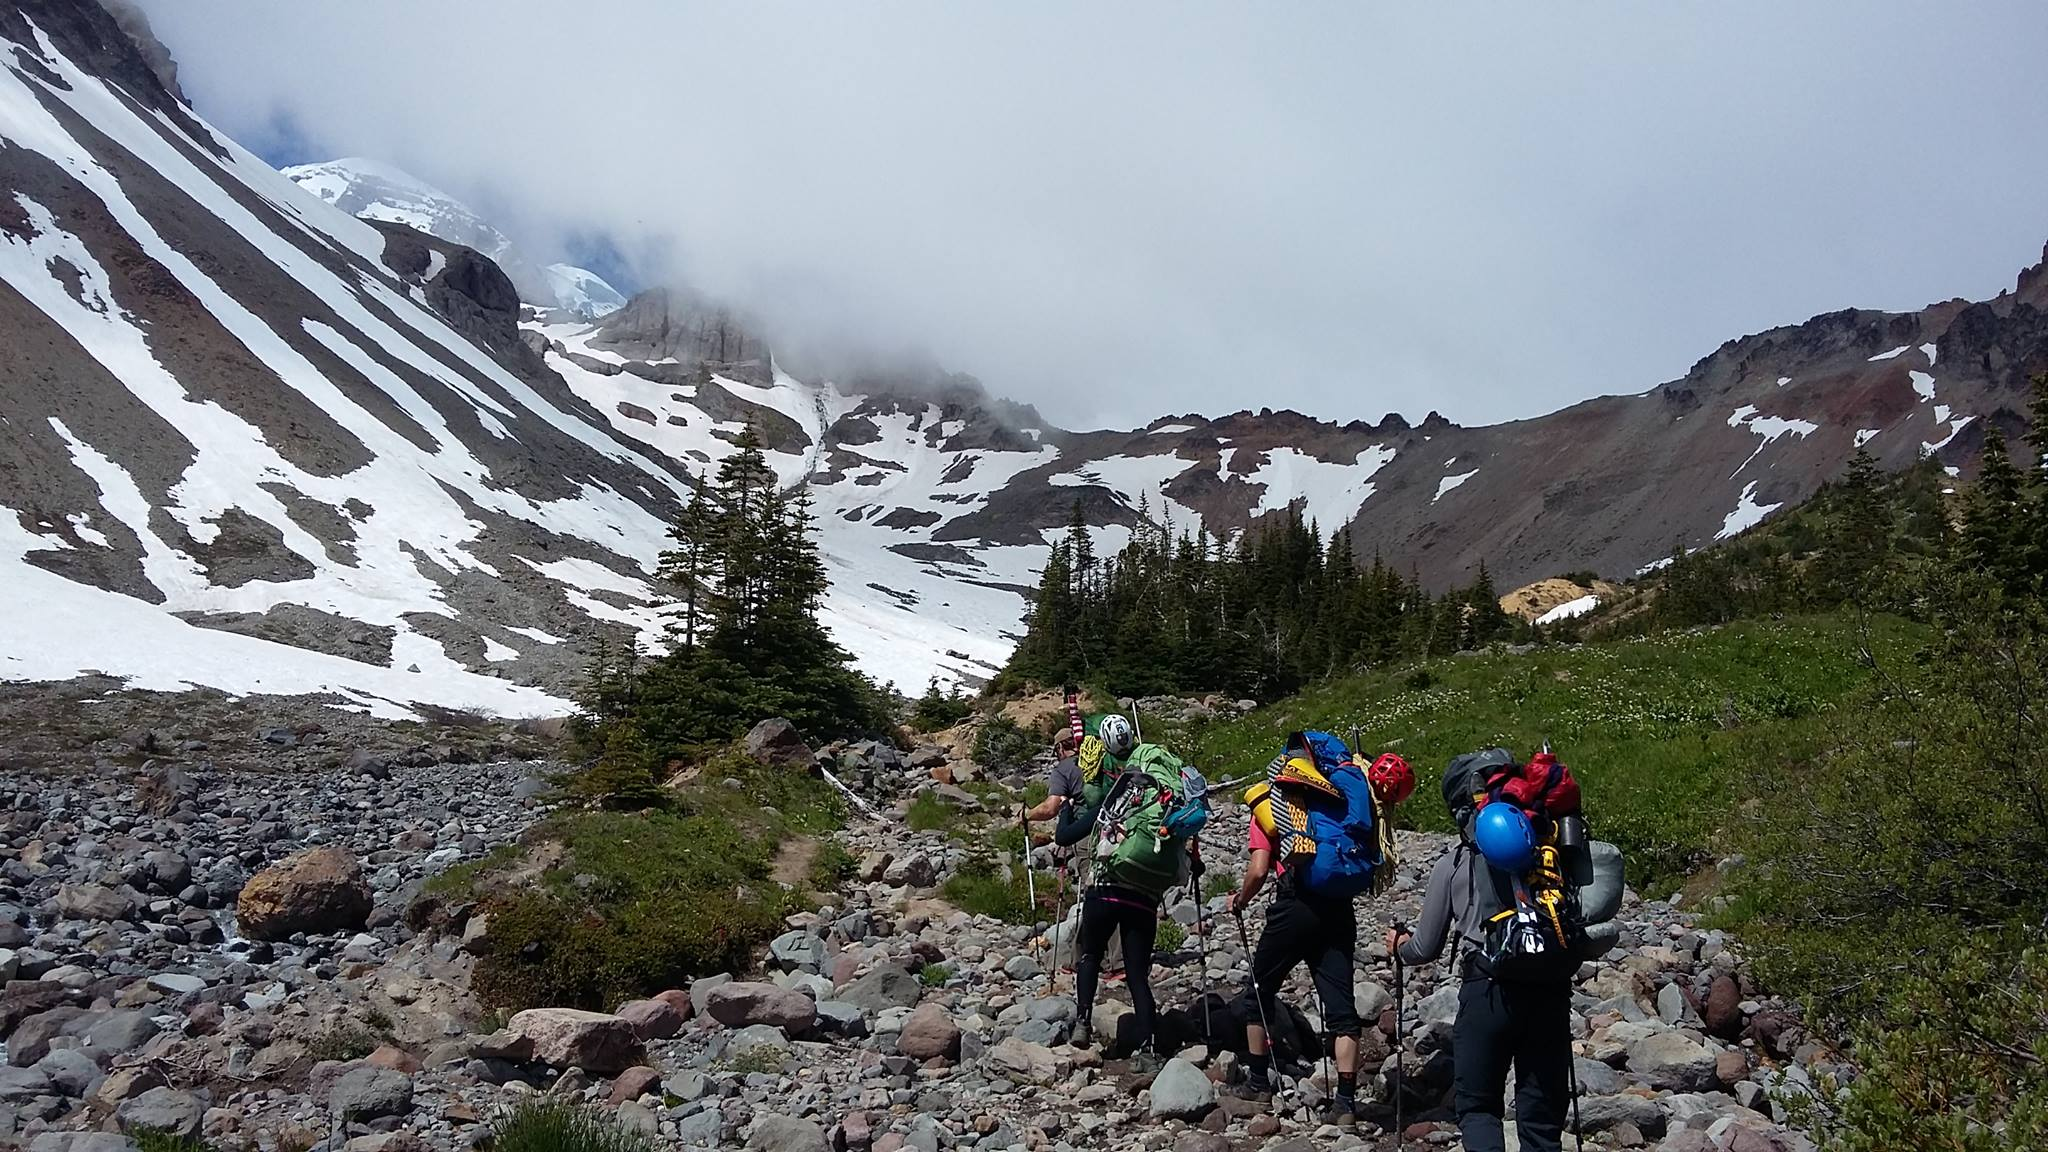 VetEx Climbers on the lower portions of Mount Rainier. From left to right: Nick Watson, Sandra sandrute, Nathan perrault, Nathan vass. (Photo By: Nick Watson)